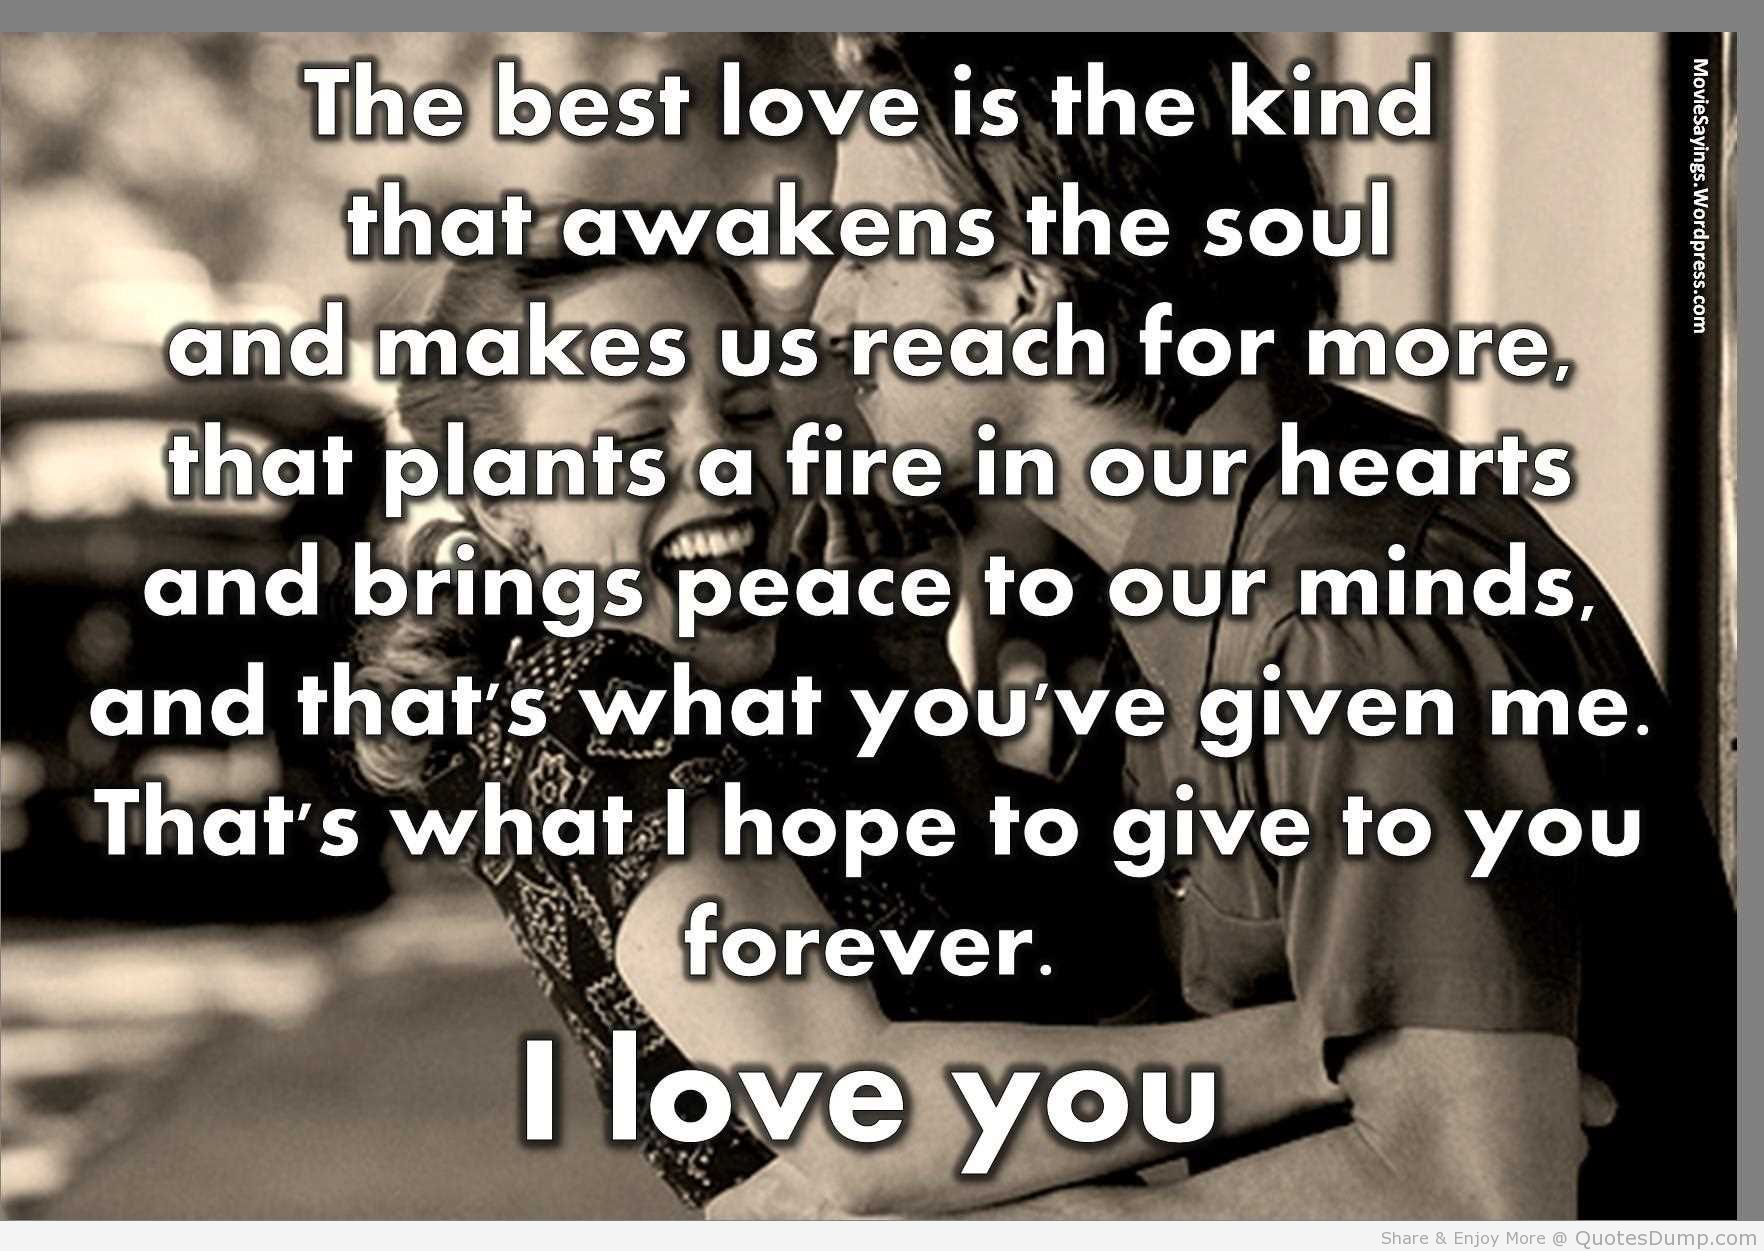 love Quotes from the notebook the Best kind of love